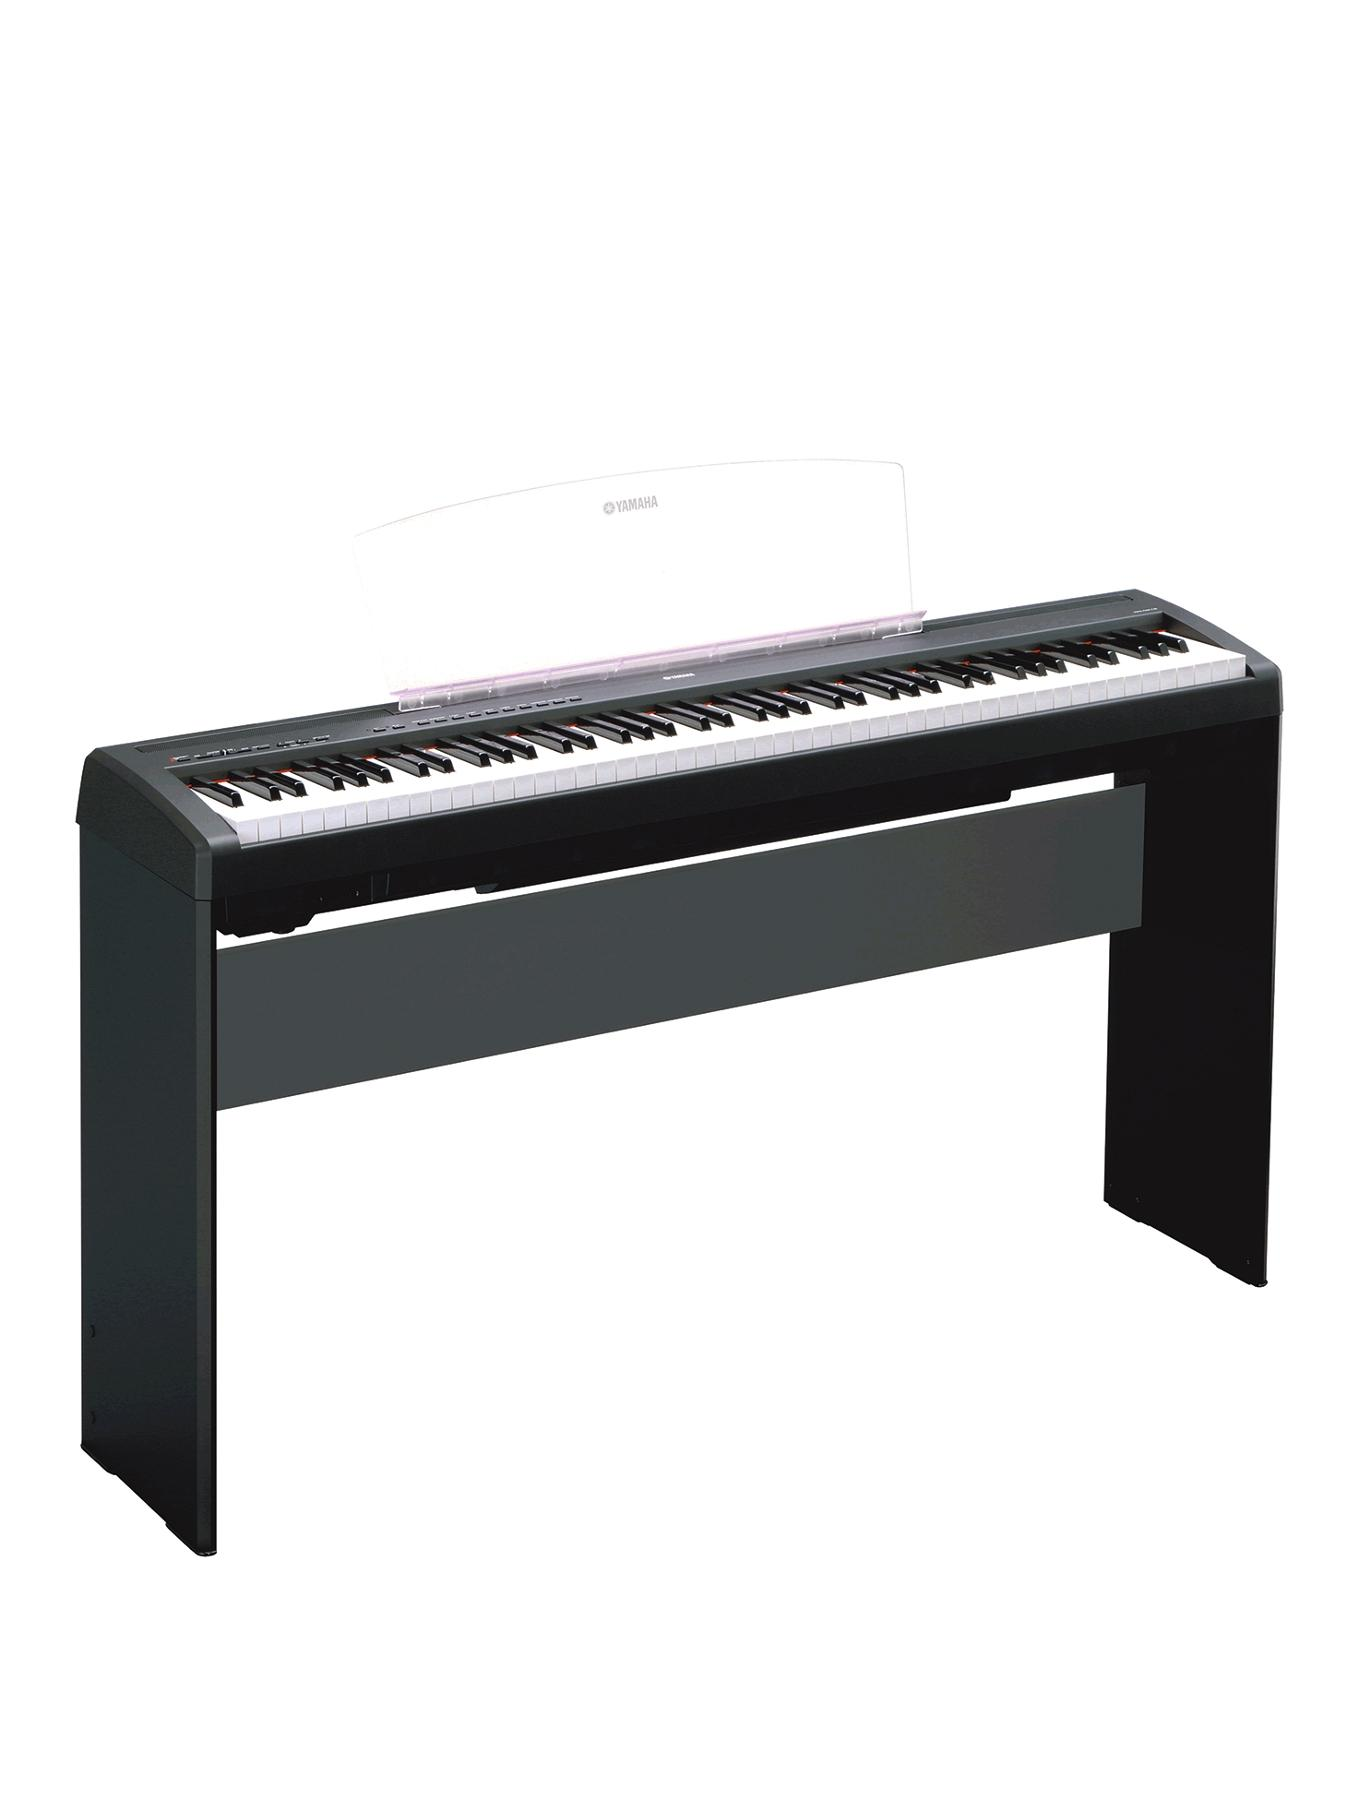 L-85 Digital Piano Stand.